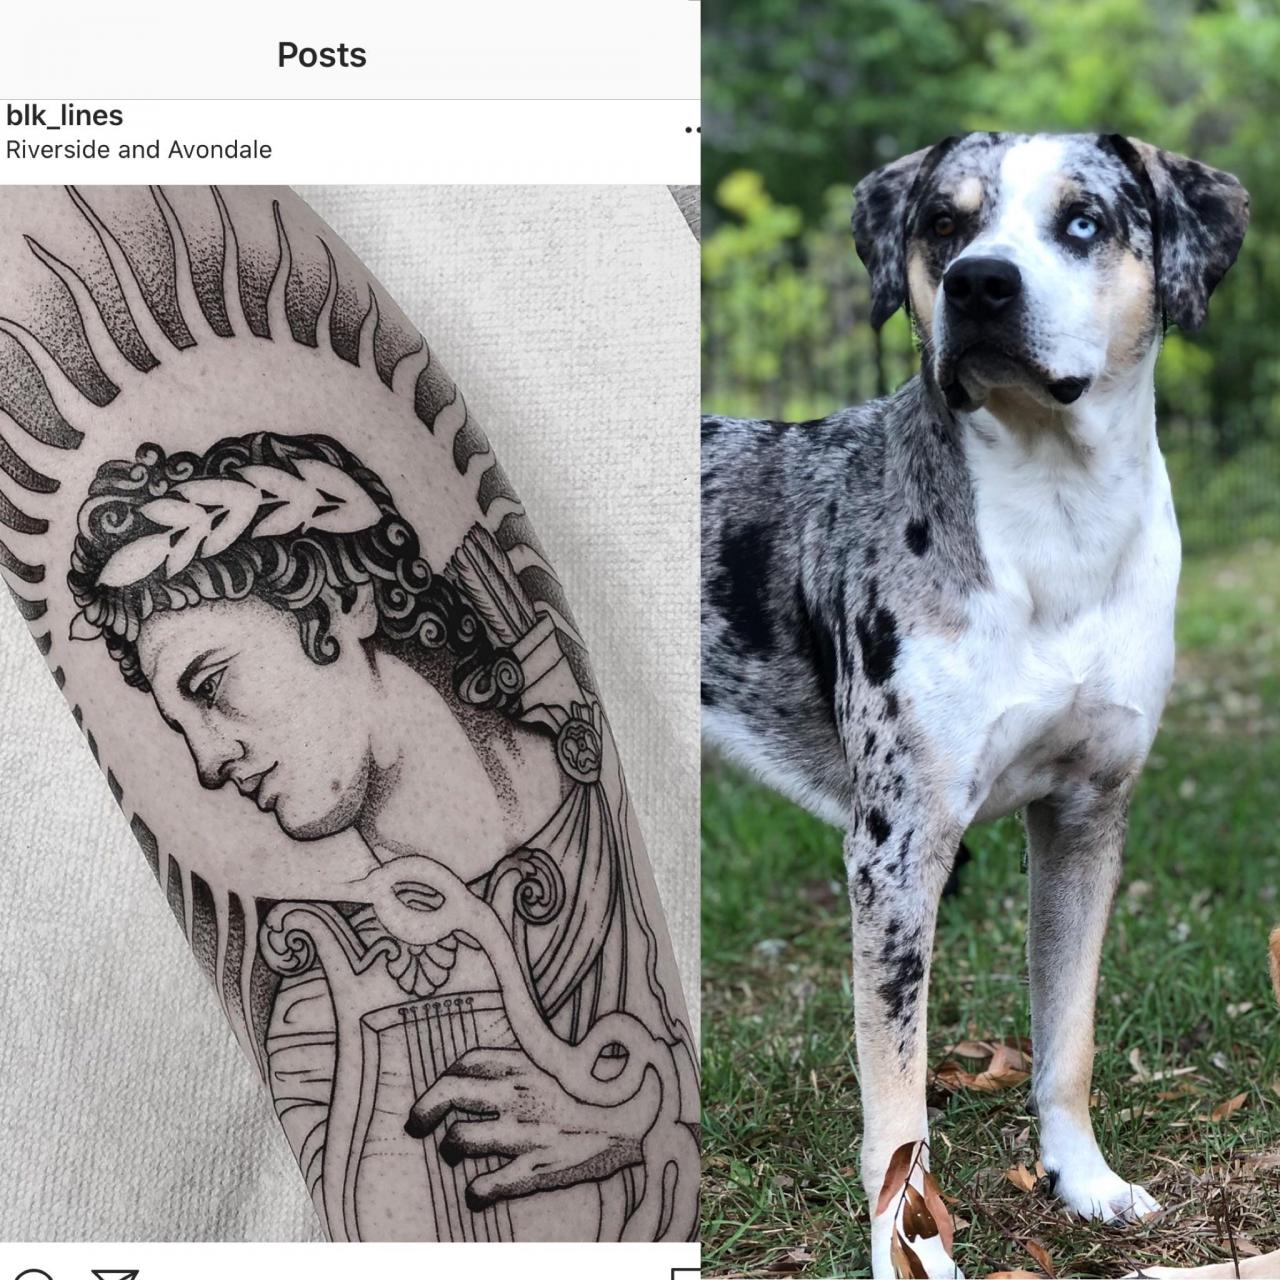 Second piece of my Greek mythology leg sleeve. Apollo, for my dog Apollo. Color this week! Done by Robby Sanders at VA studio in Jax, FL.